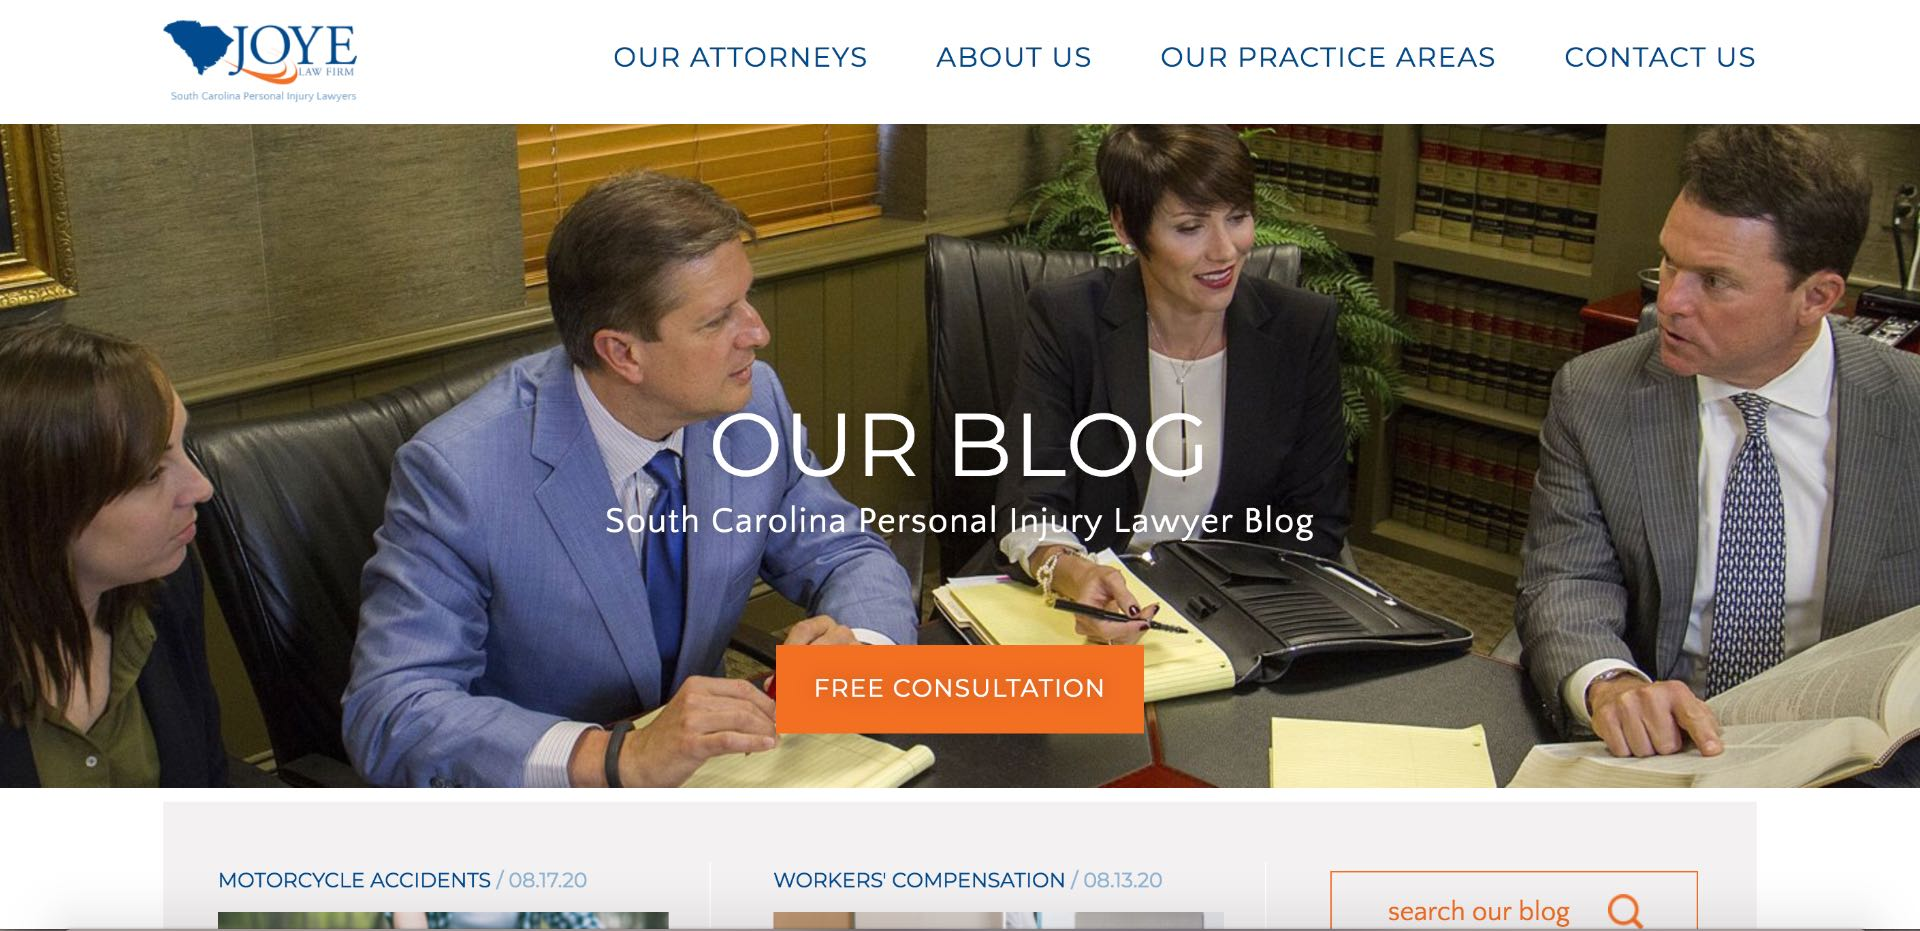 The lawyer blog helps keep content relevant to searchers